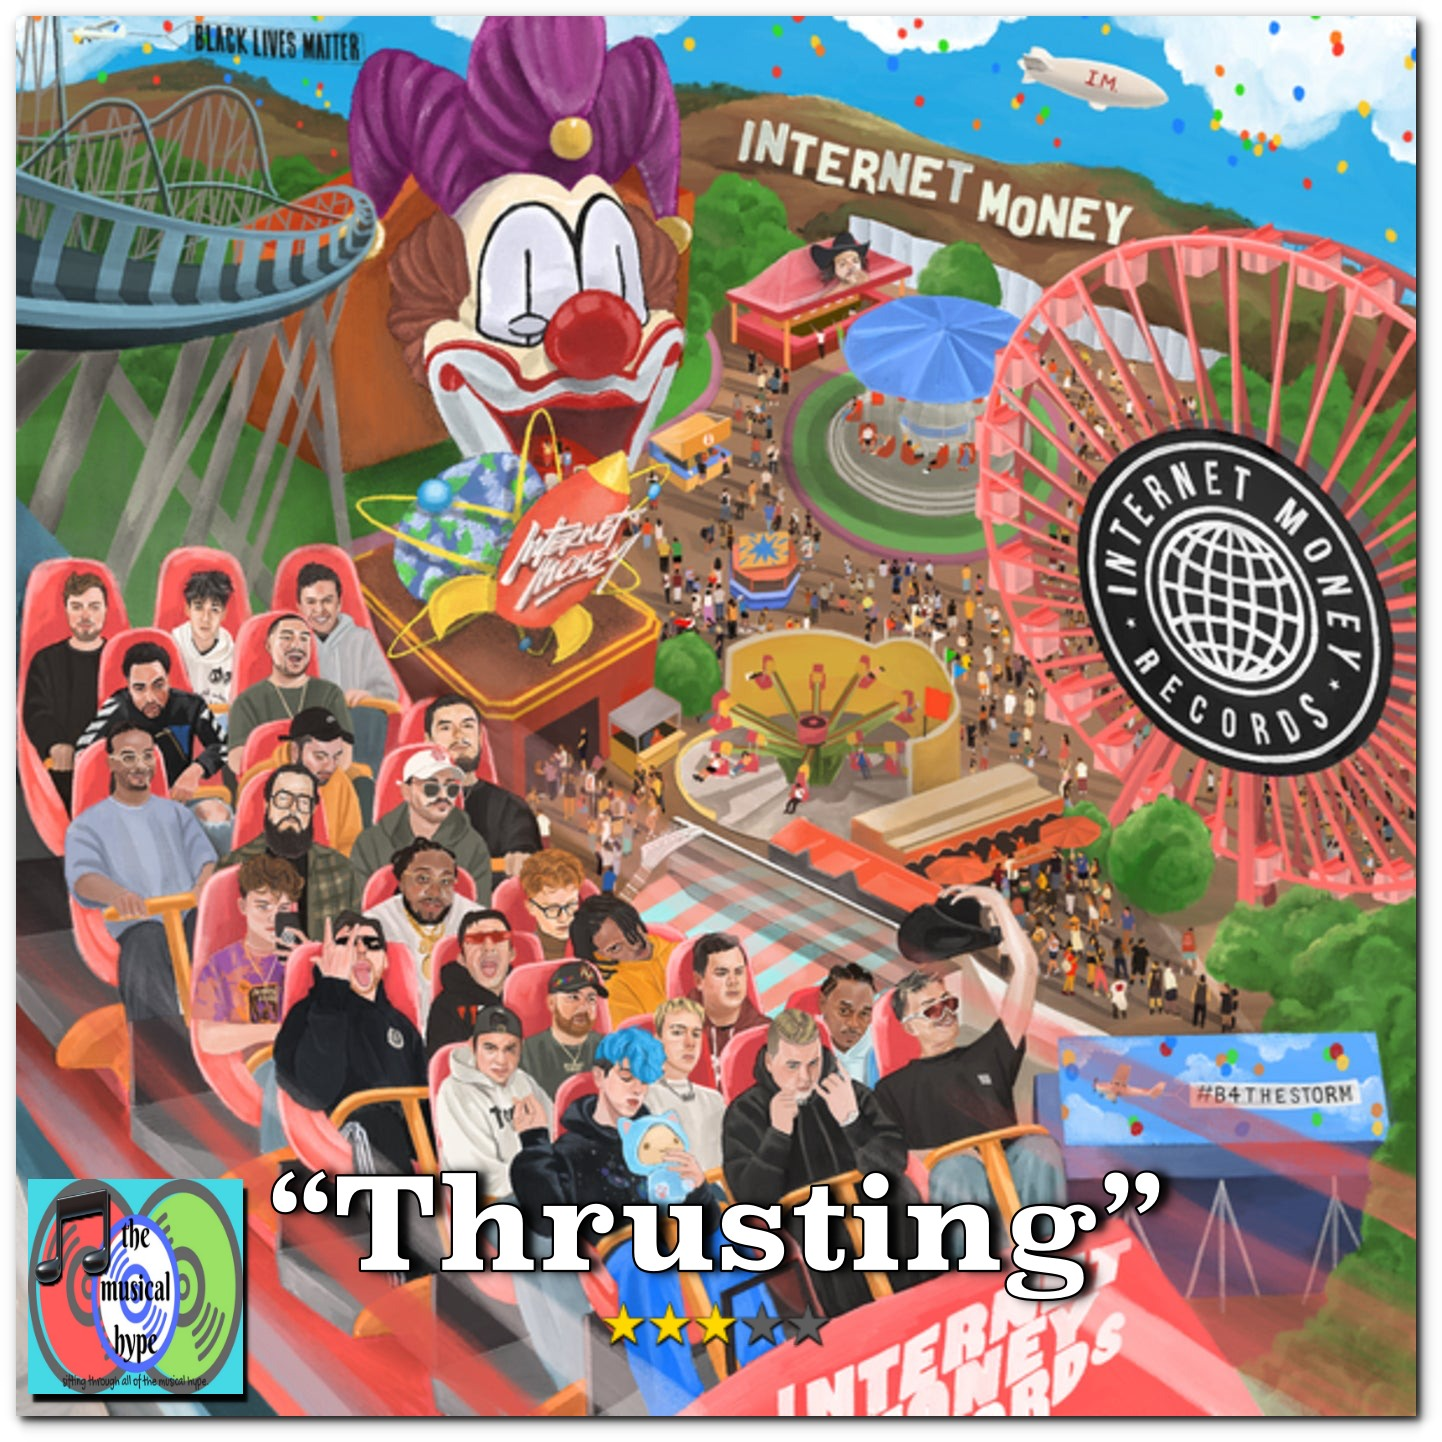 Internet Money Thrusting Track Review The Musical Hype